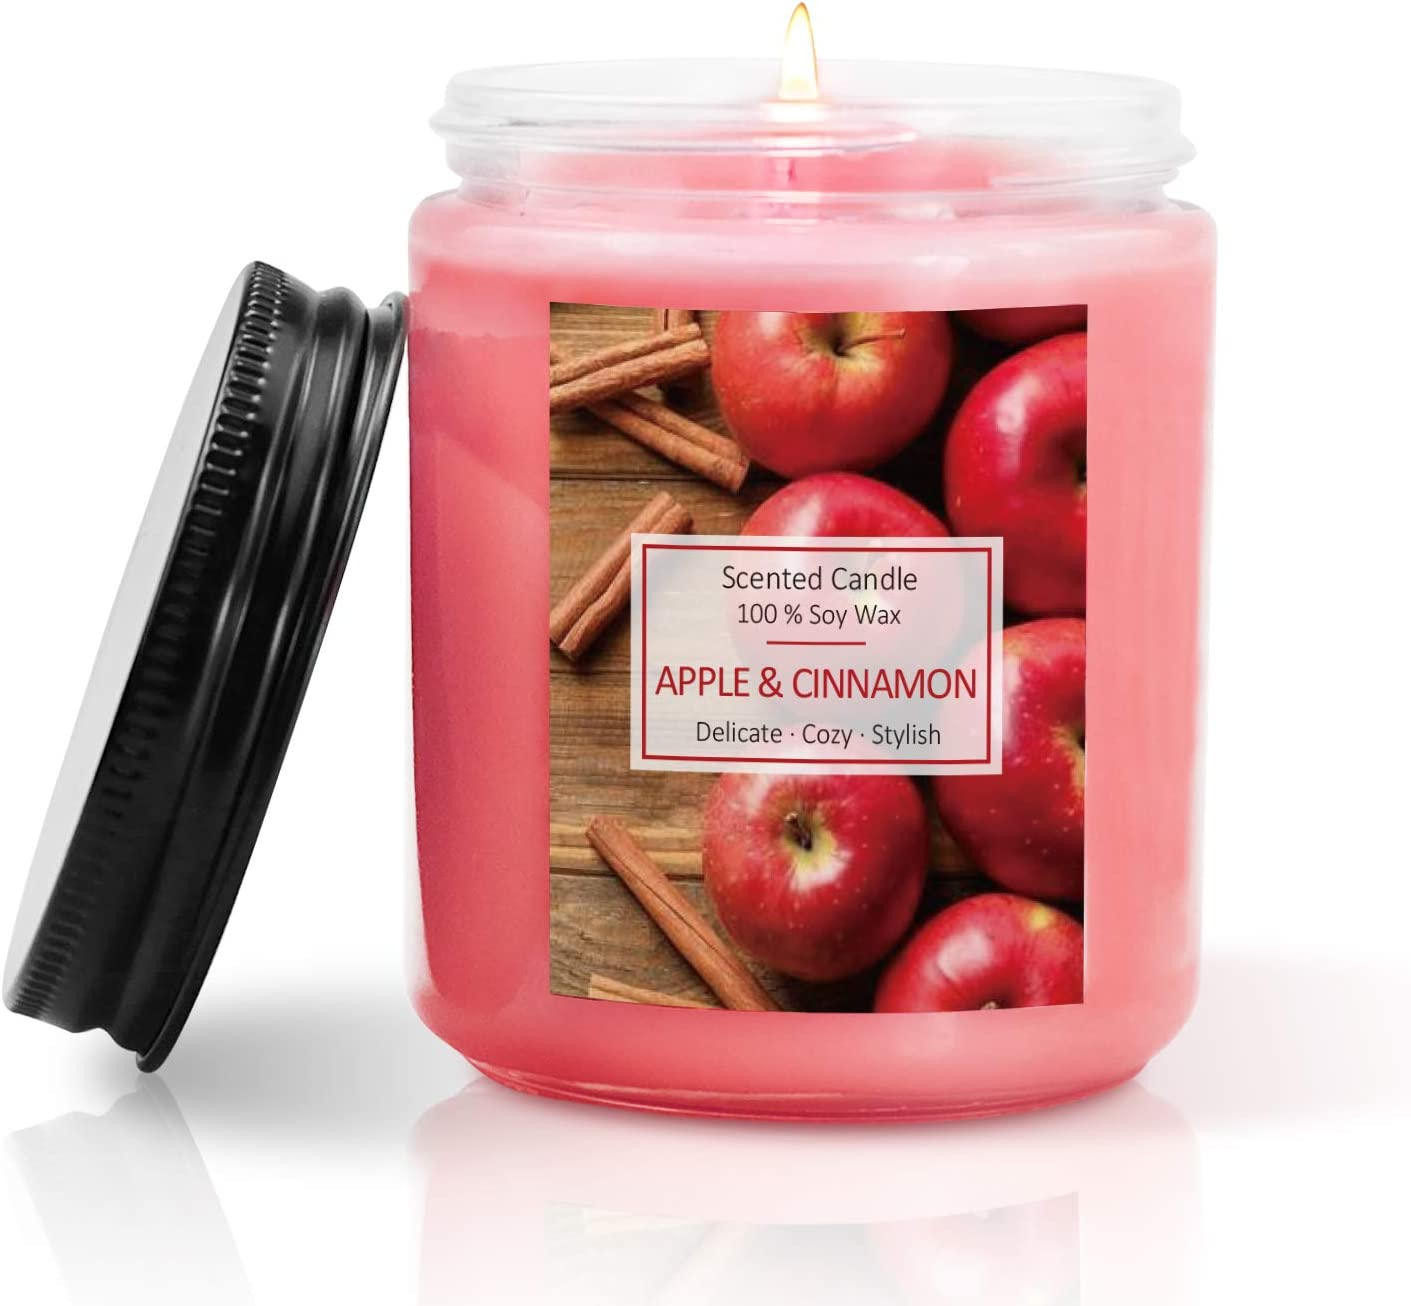 SCENTORINI Scented Candles, Soy Wax Candles, Aromatherapy Candles, Apple Cinnamon Candle Gift for Halloween Christmas